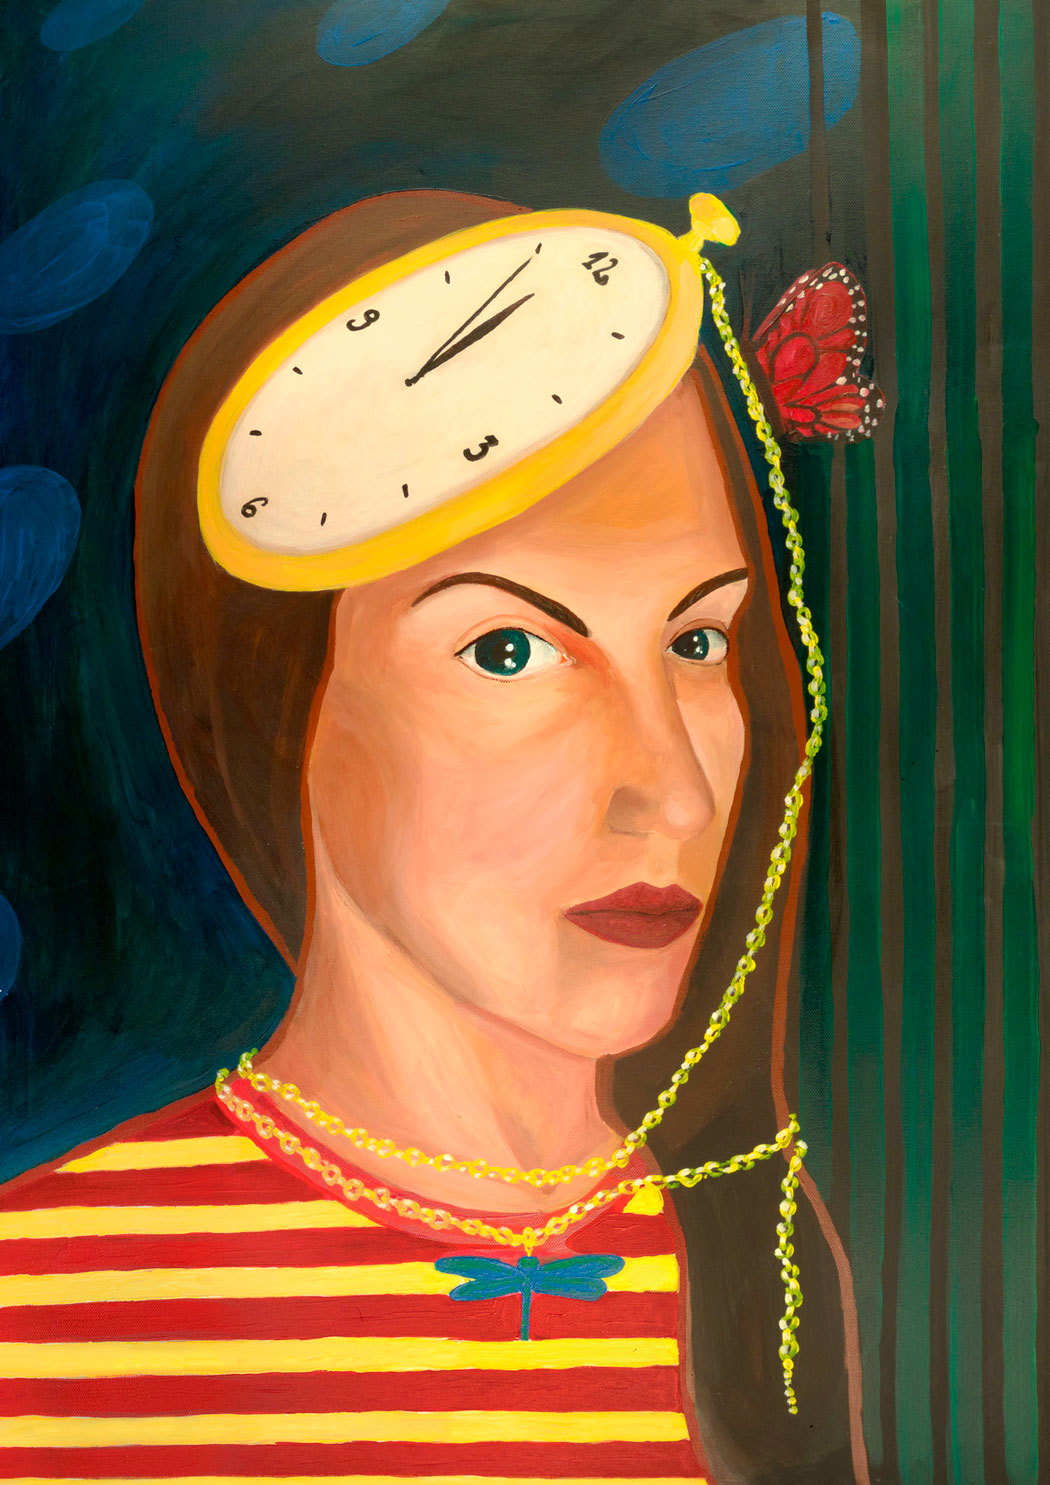 cubistic painting of a woman - by aga hayat - friendmade.fm